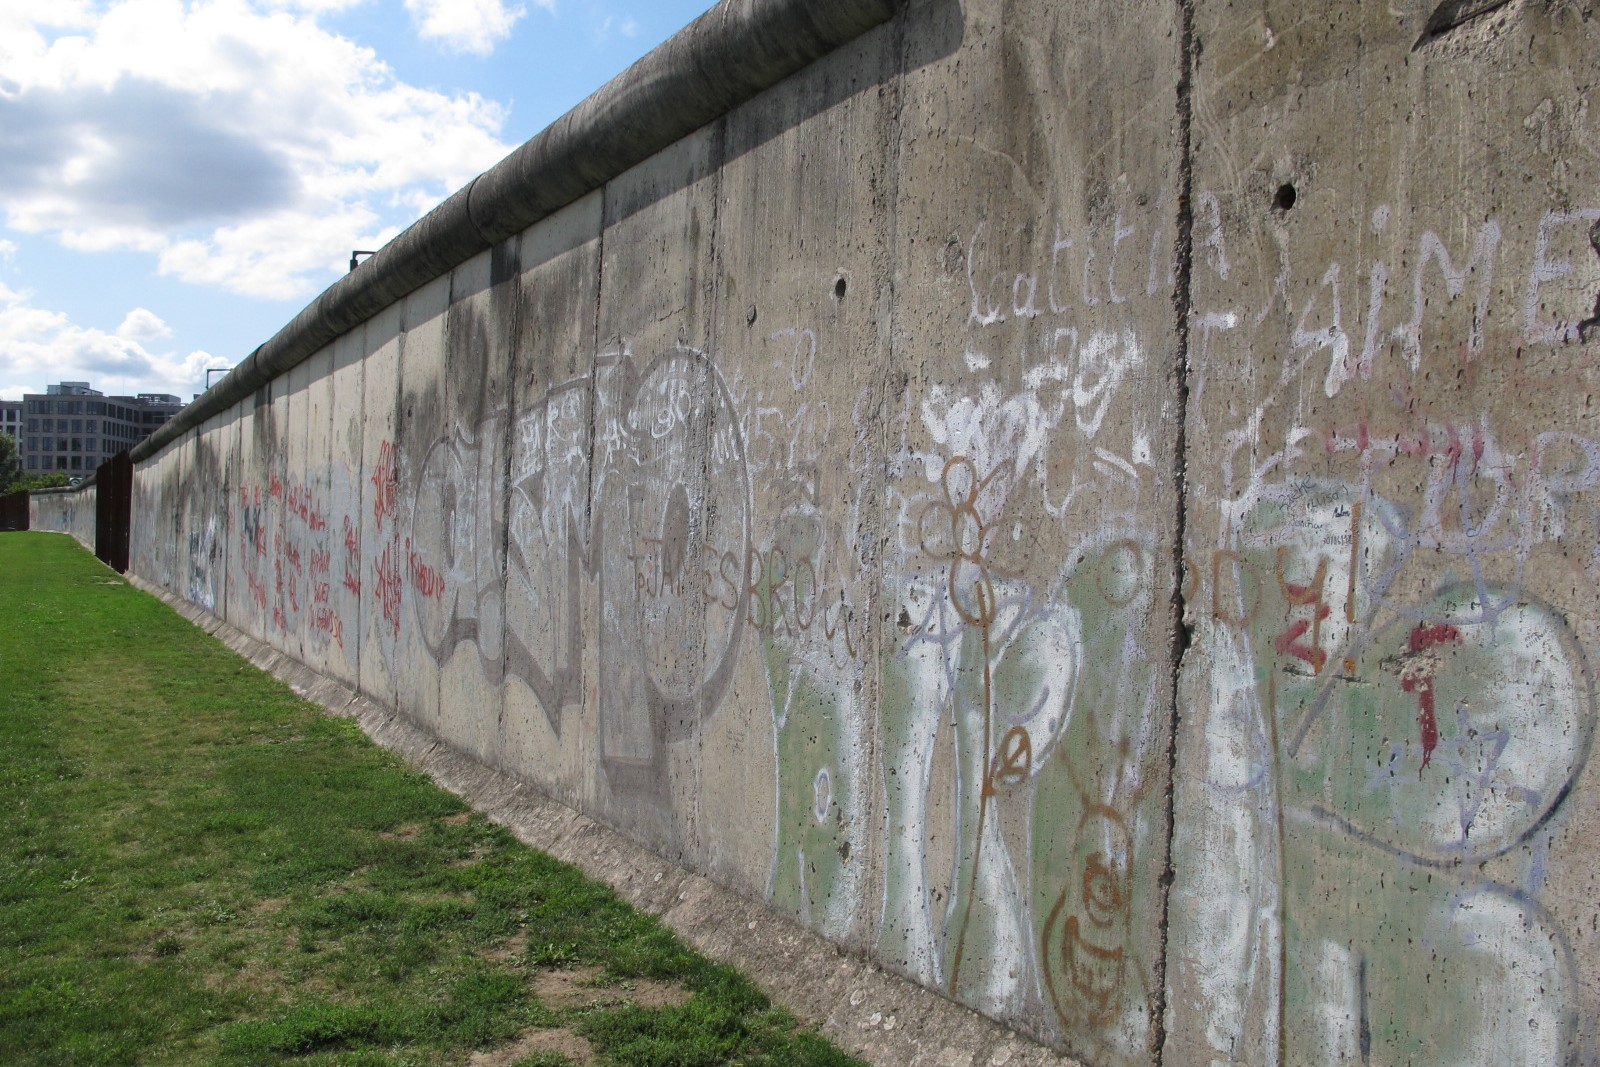 segment of Berlin Wall